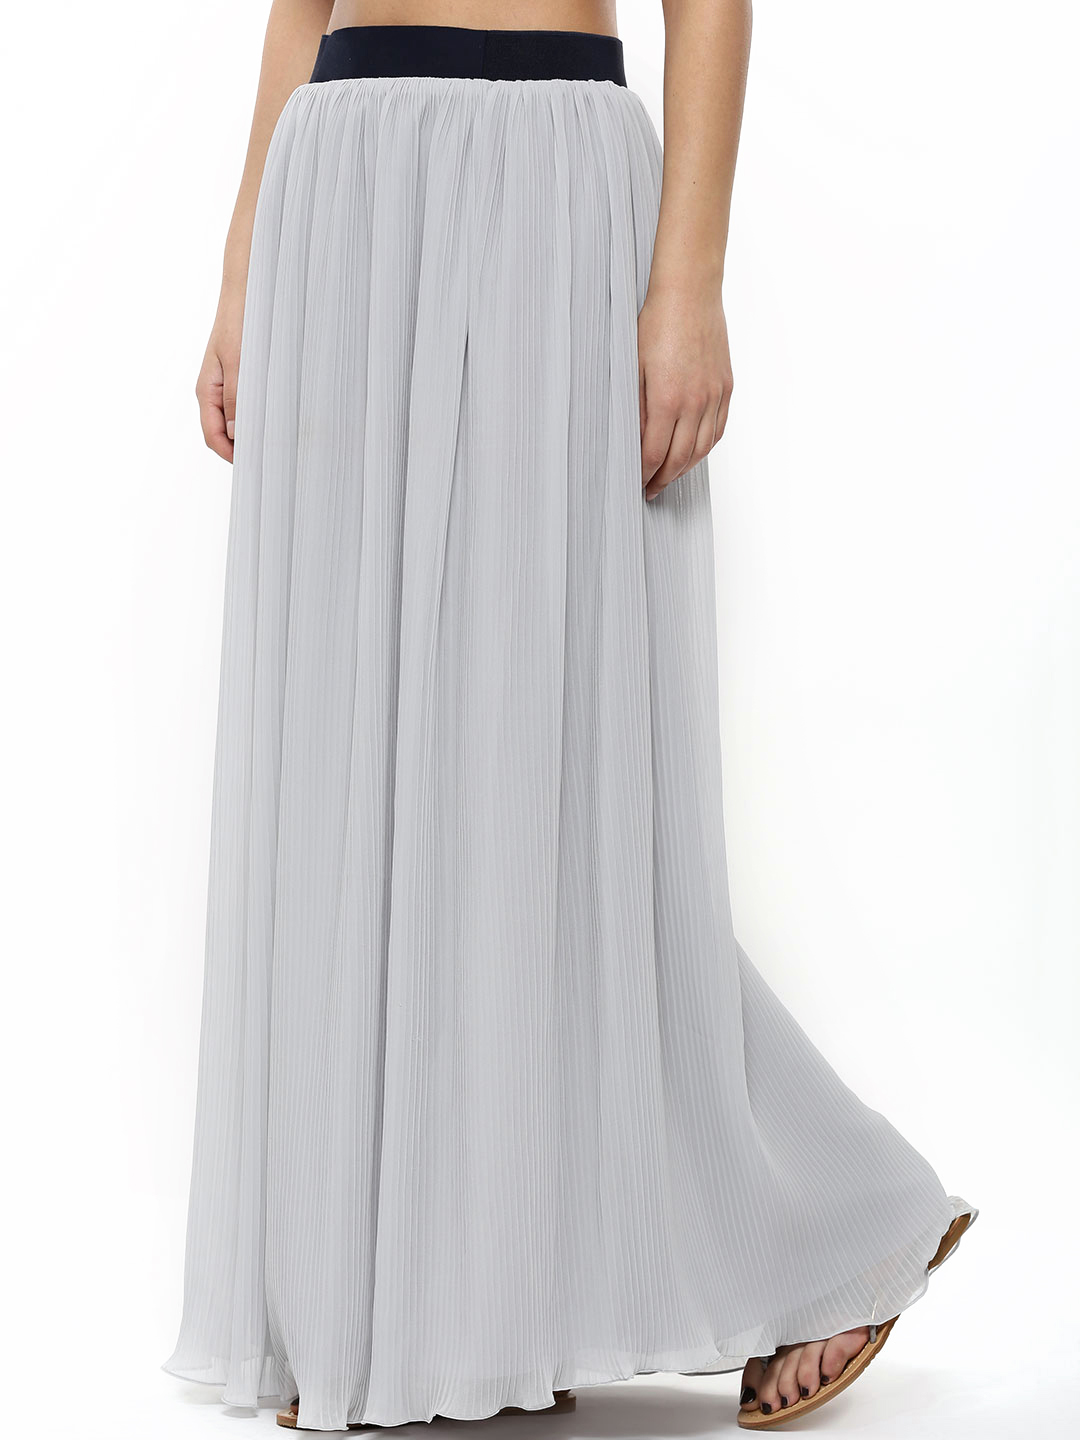 The Paperdoll Company Grey Pleated Maxi Skirt 1